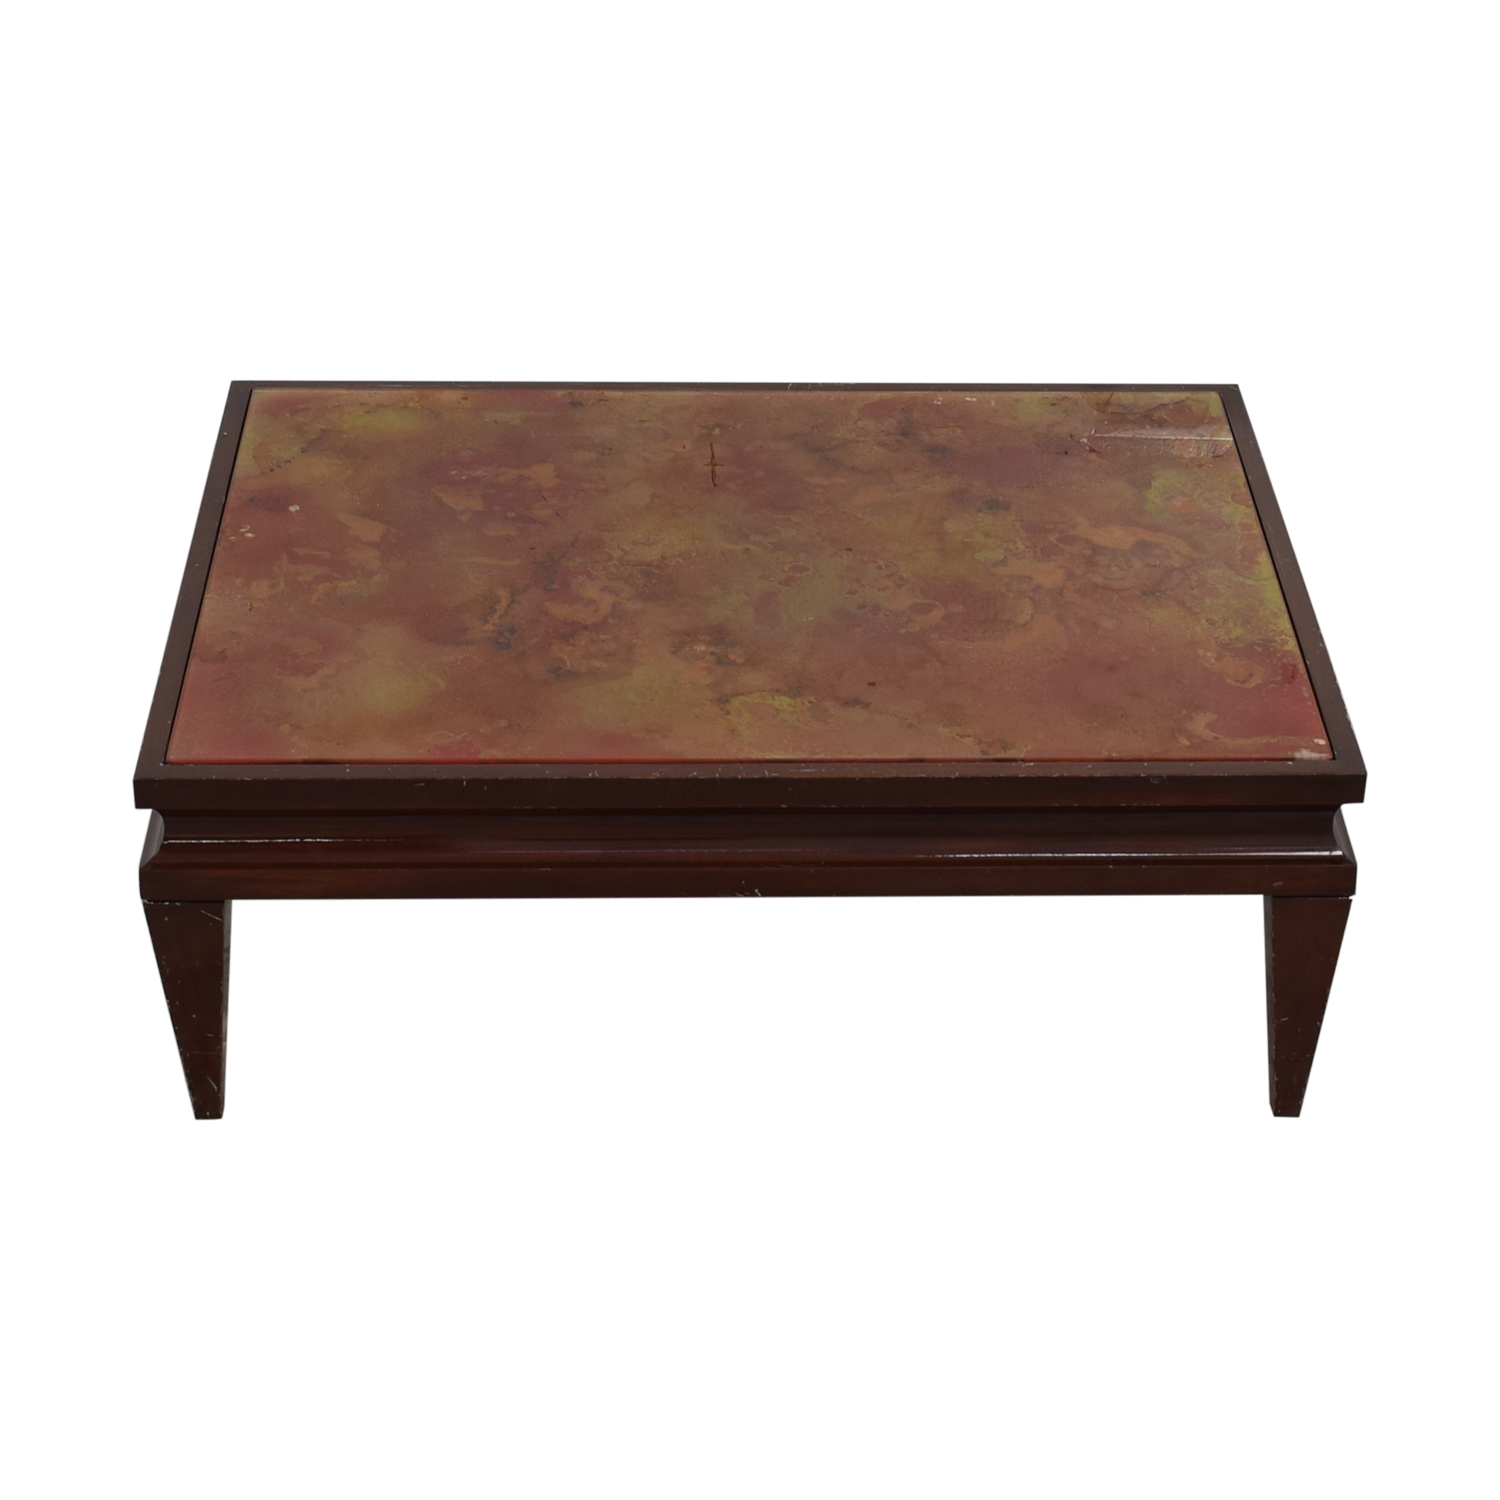 Vintage Coffee Table second hand